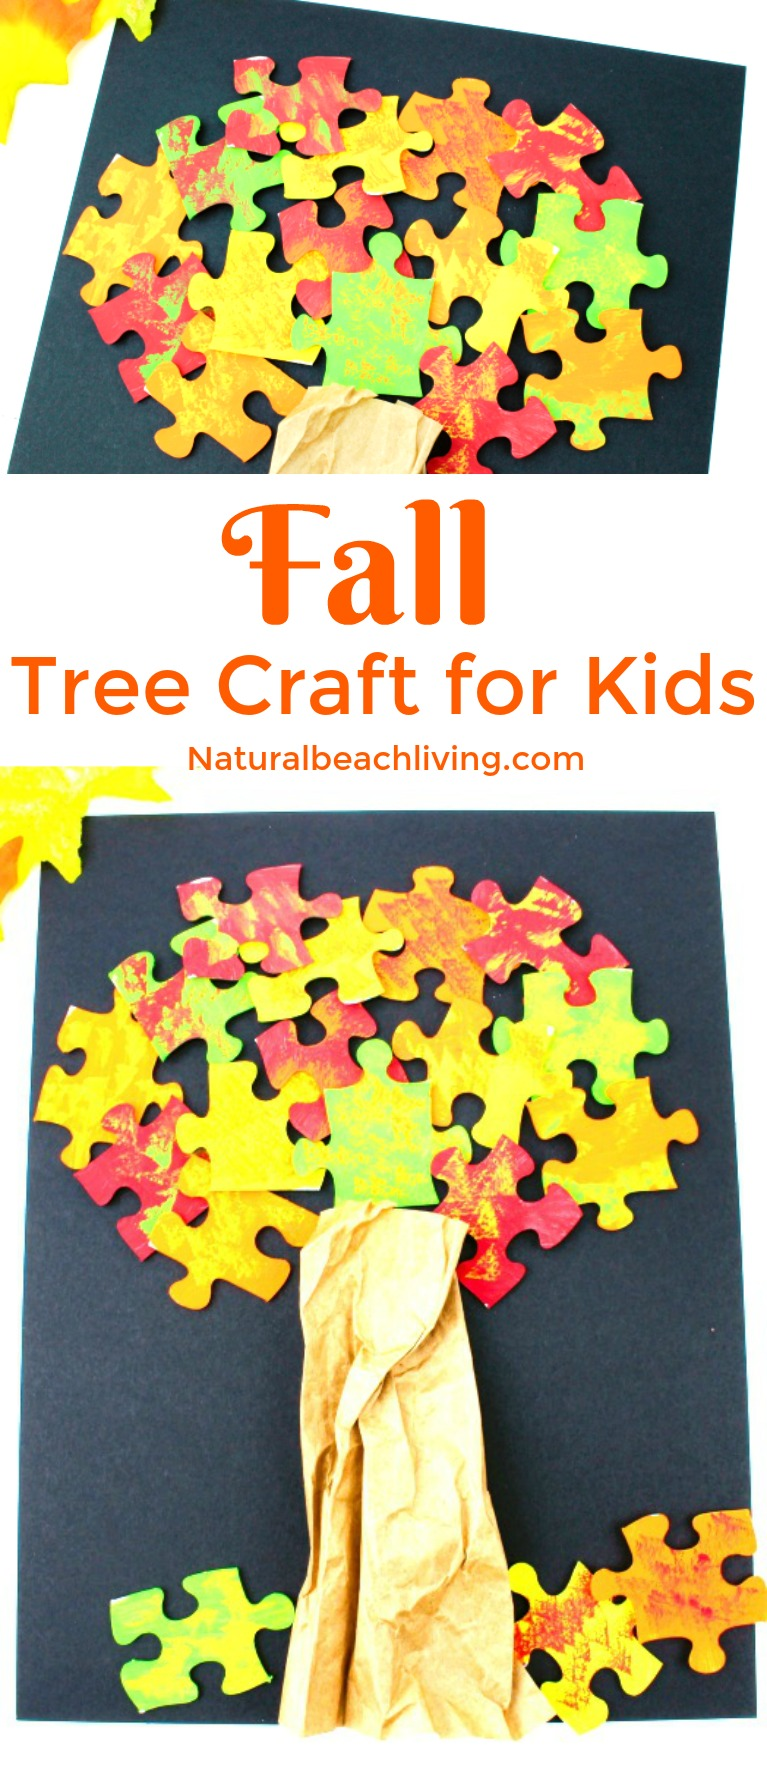 Bring the beauty of fall indoors with these 25Leaf Crafts for Kids. These fun seasonal craft projects are perfect for kids to make themselves or in a classroom. Craft with real leaves and sticks to create beautifulartwork and colorful displays for autumn. Fall Crafts for Kids and Easy fall leaf craft activities